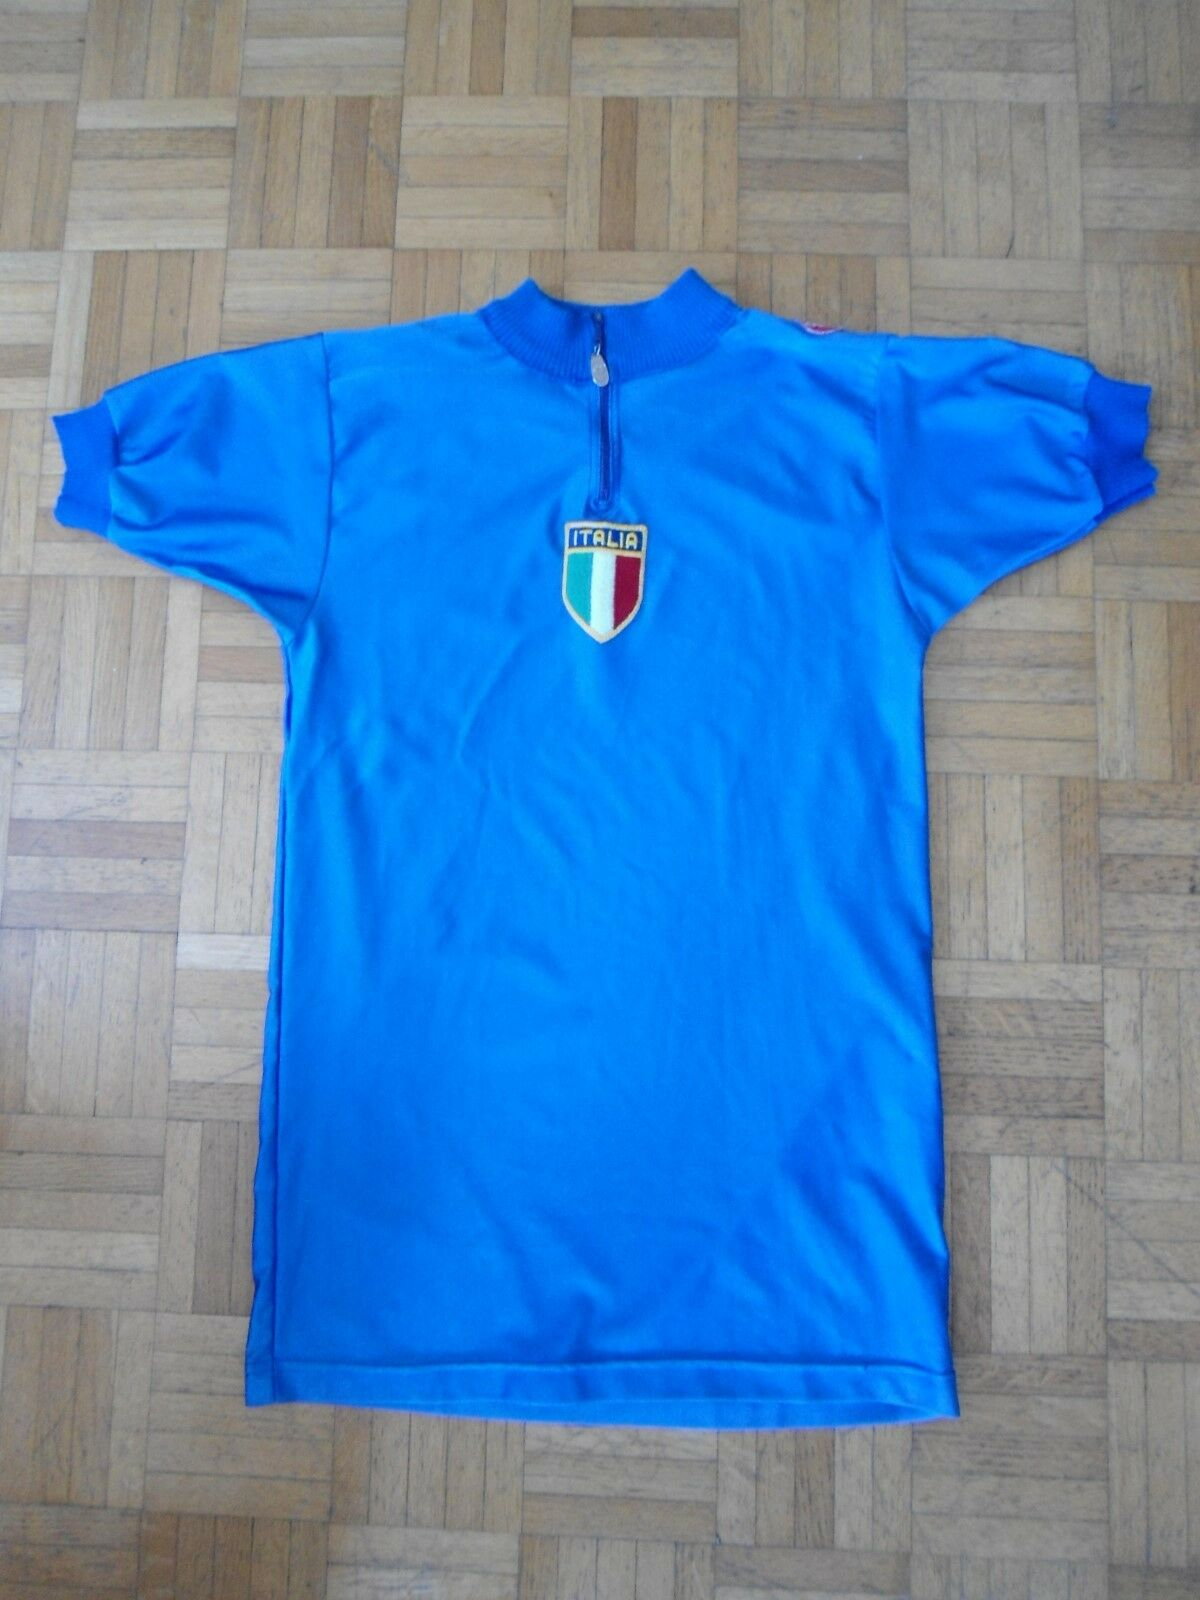 Italian Team Time trial cycling jersey made by Castelli in VVGC